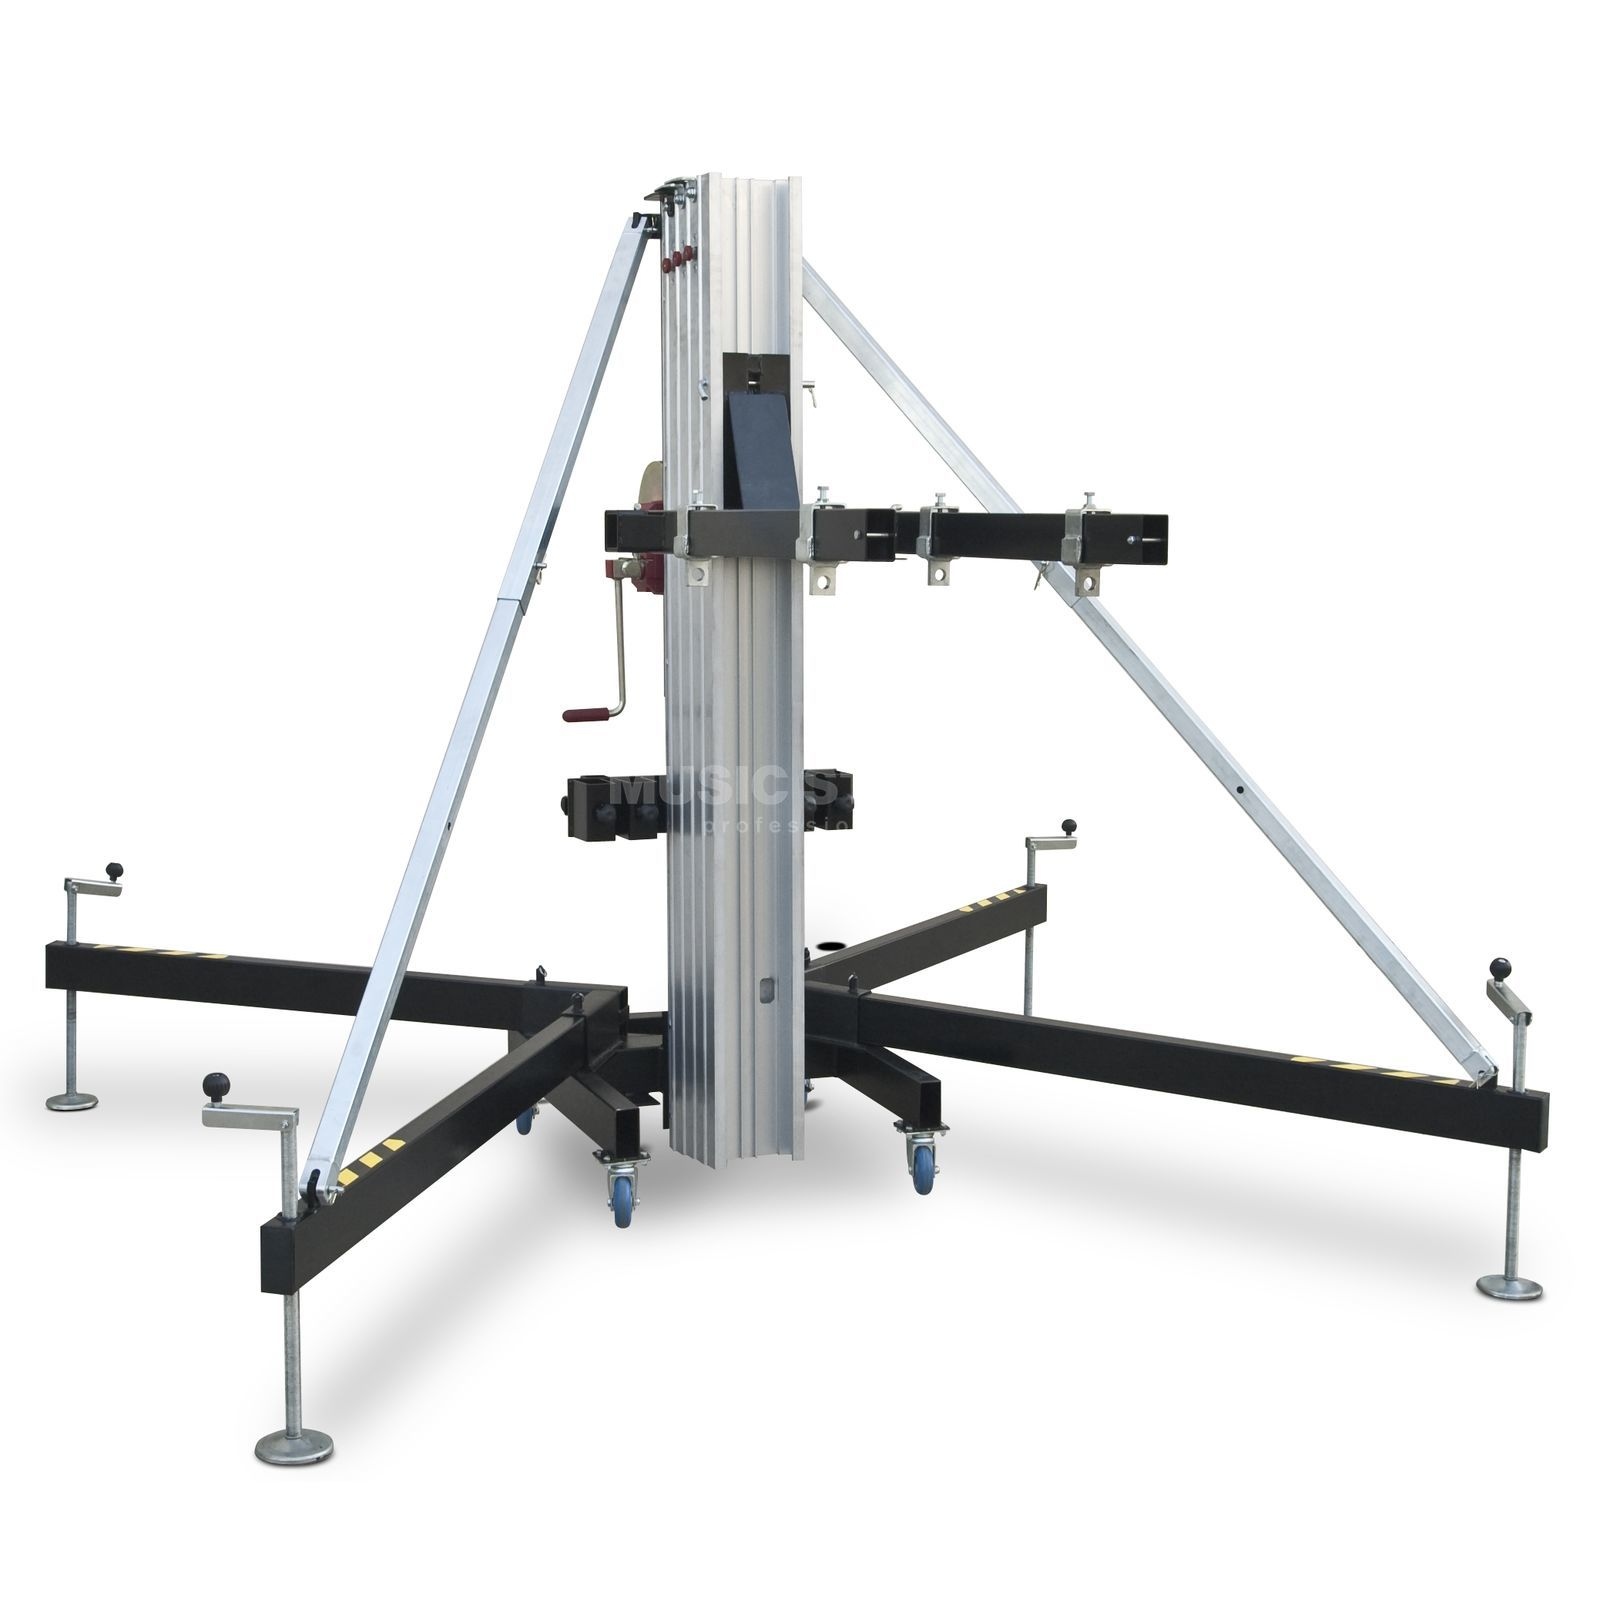 Work WT 700 Line Array Lift 500 kg, 6,5 m Product Image